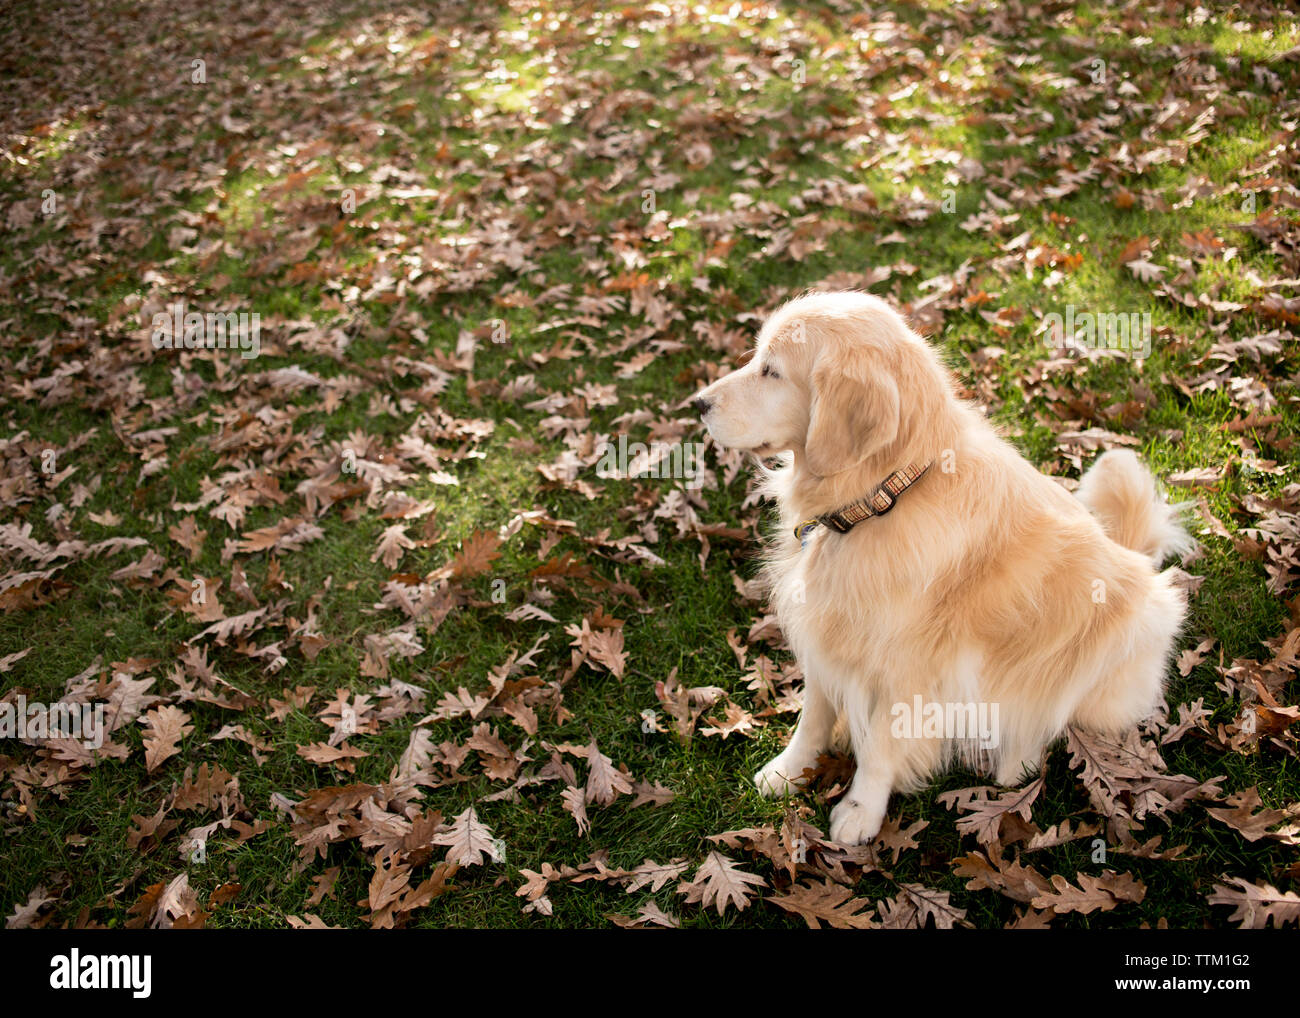 High angle view of hairy Golden Retriever looking away while sitting on field with dry leaves in park during autumn - Stock Image